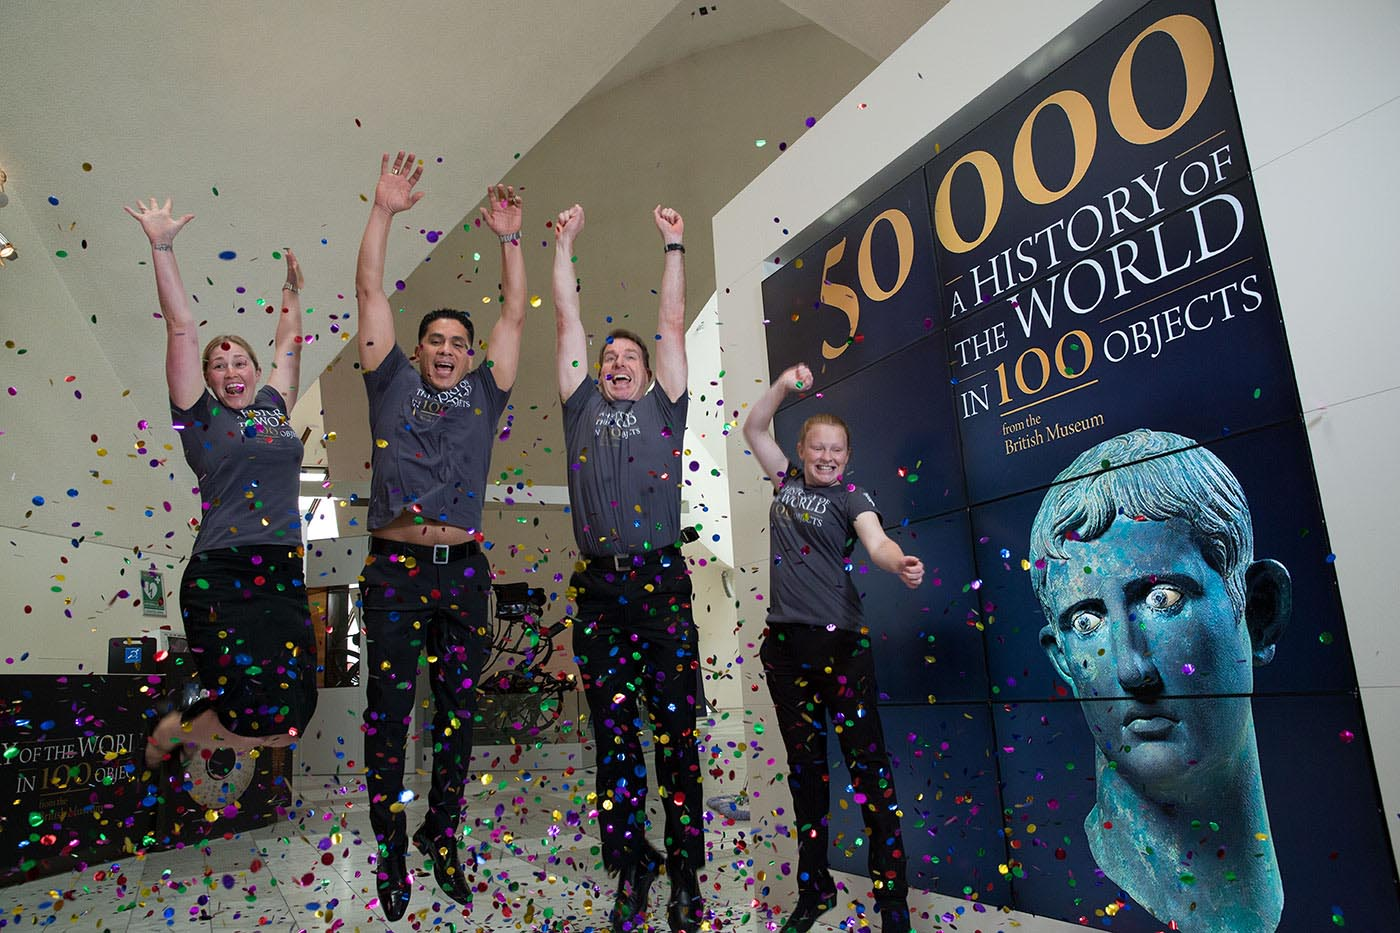 Two women and two men in uniform jumping in the air amidst confetti, adjacent to a promotional billboard.